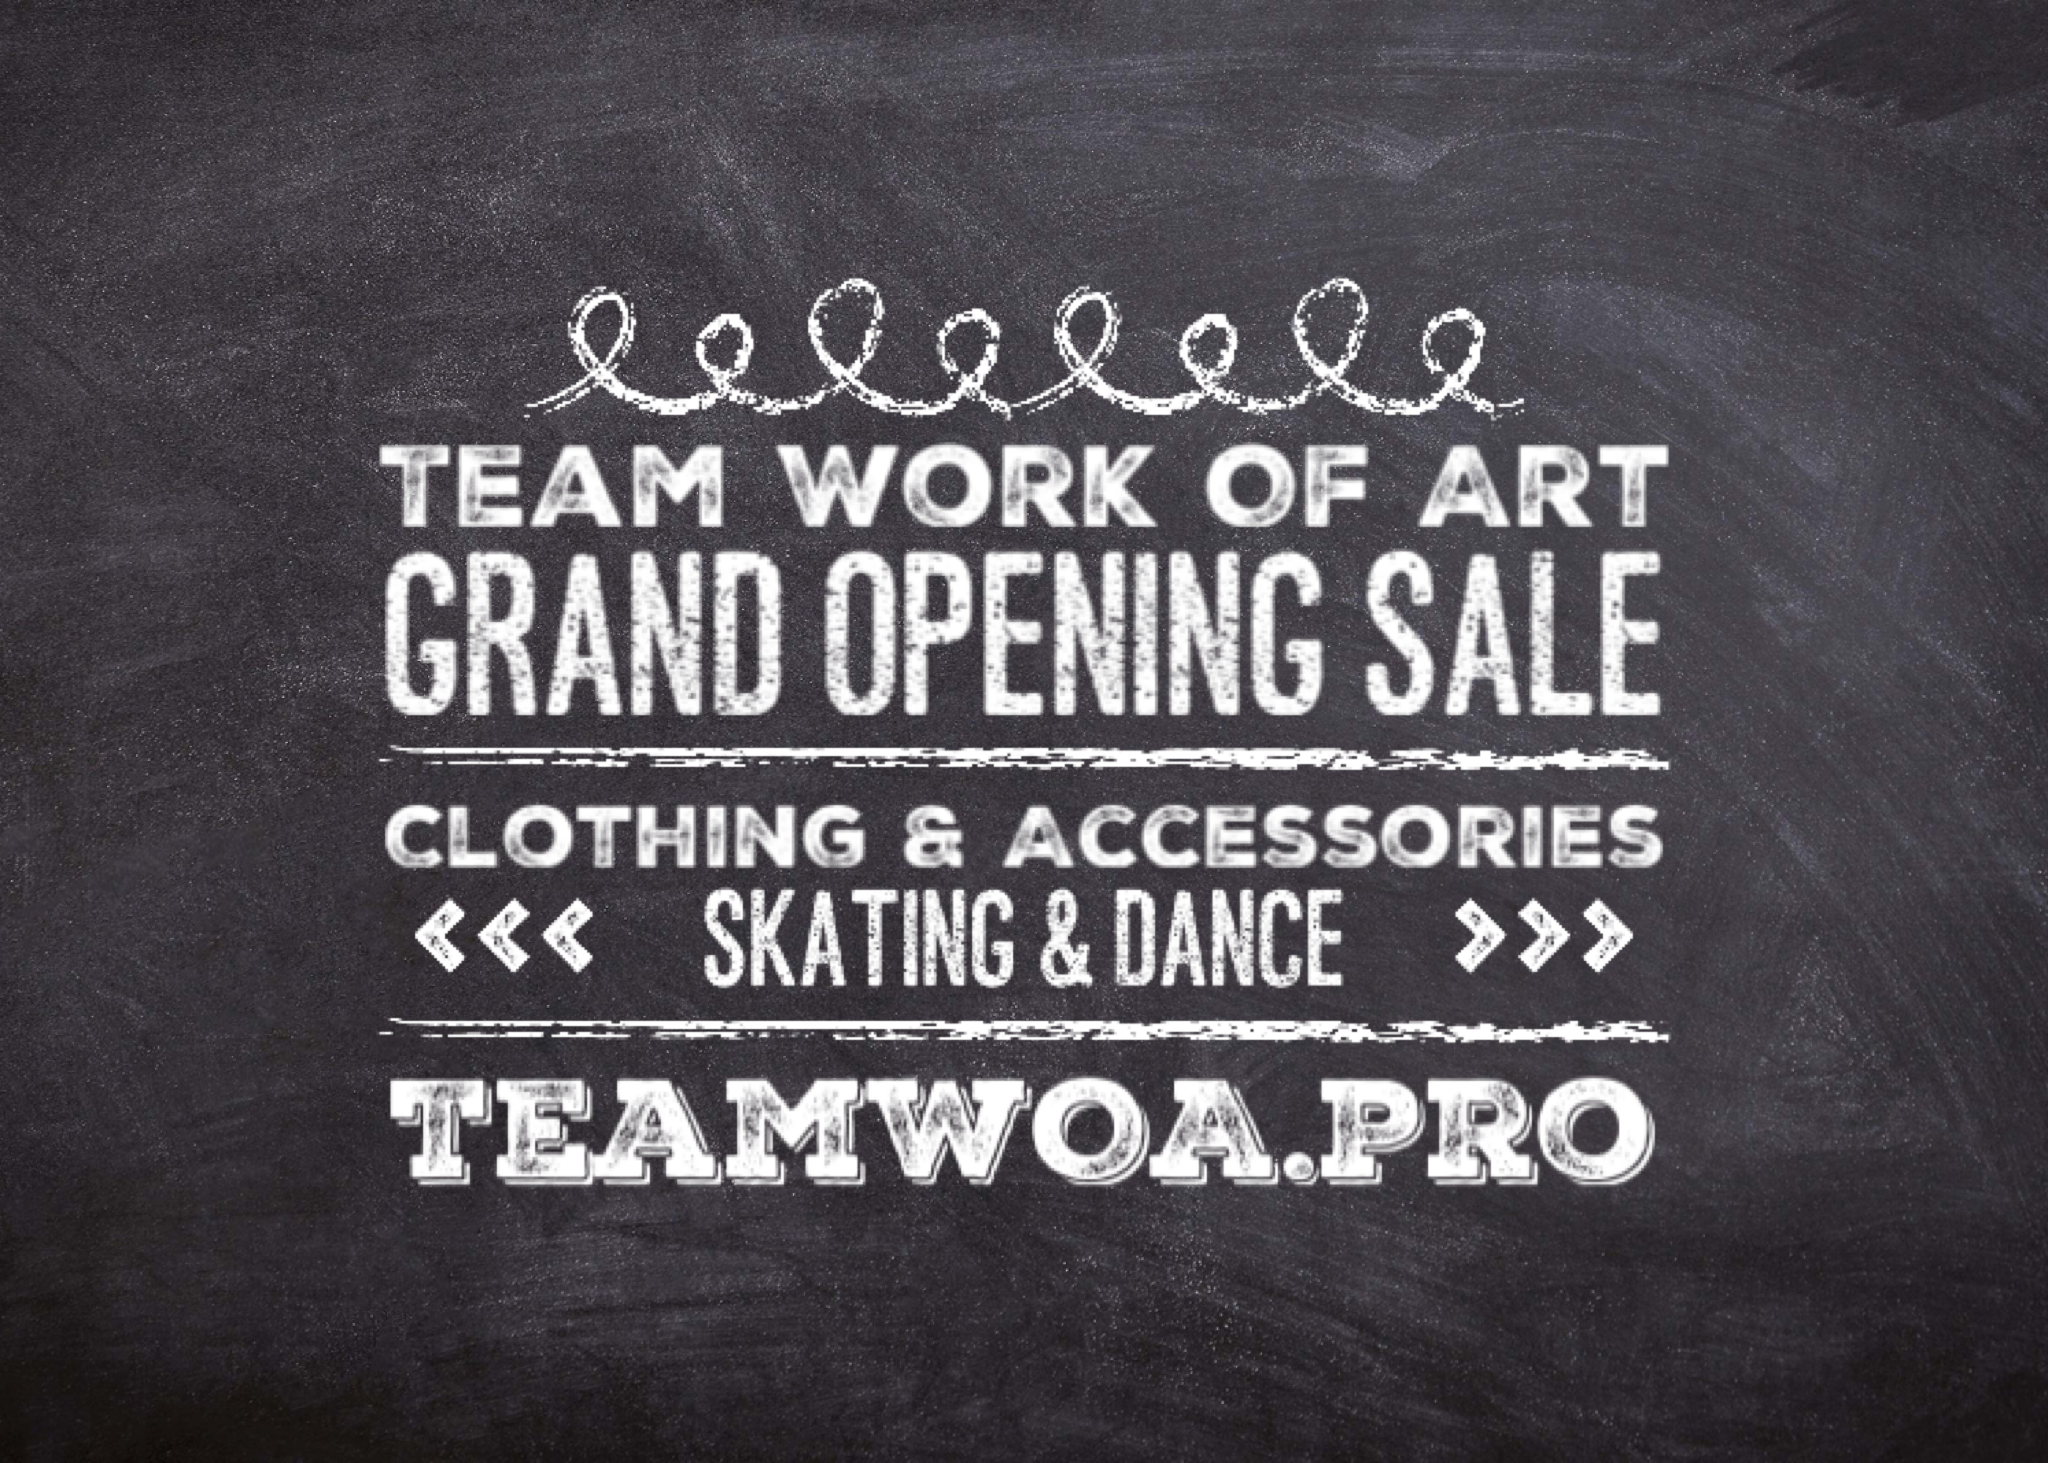 What is Team Work of Art?